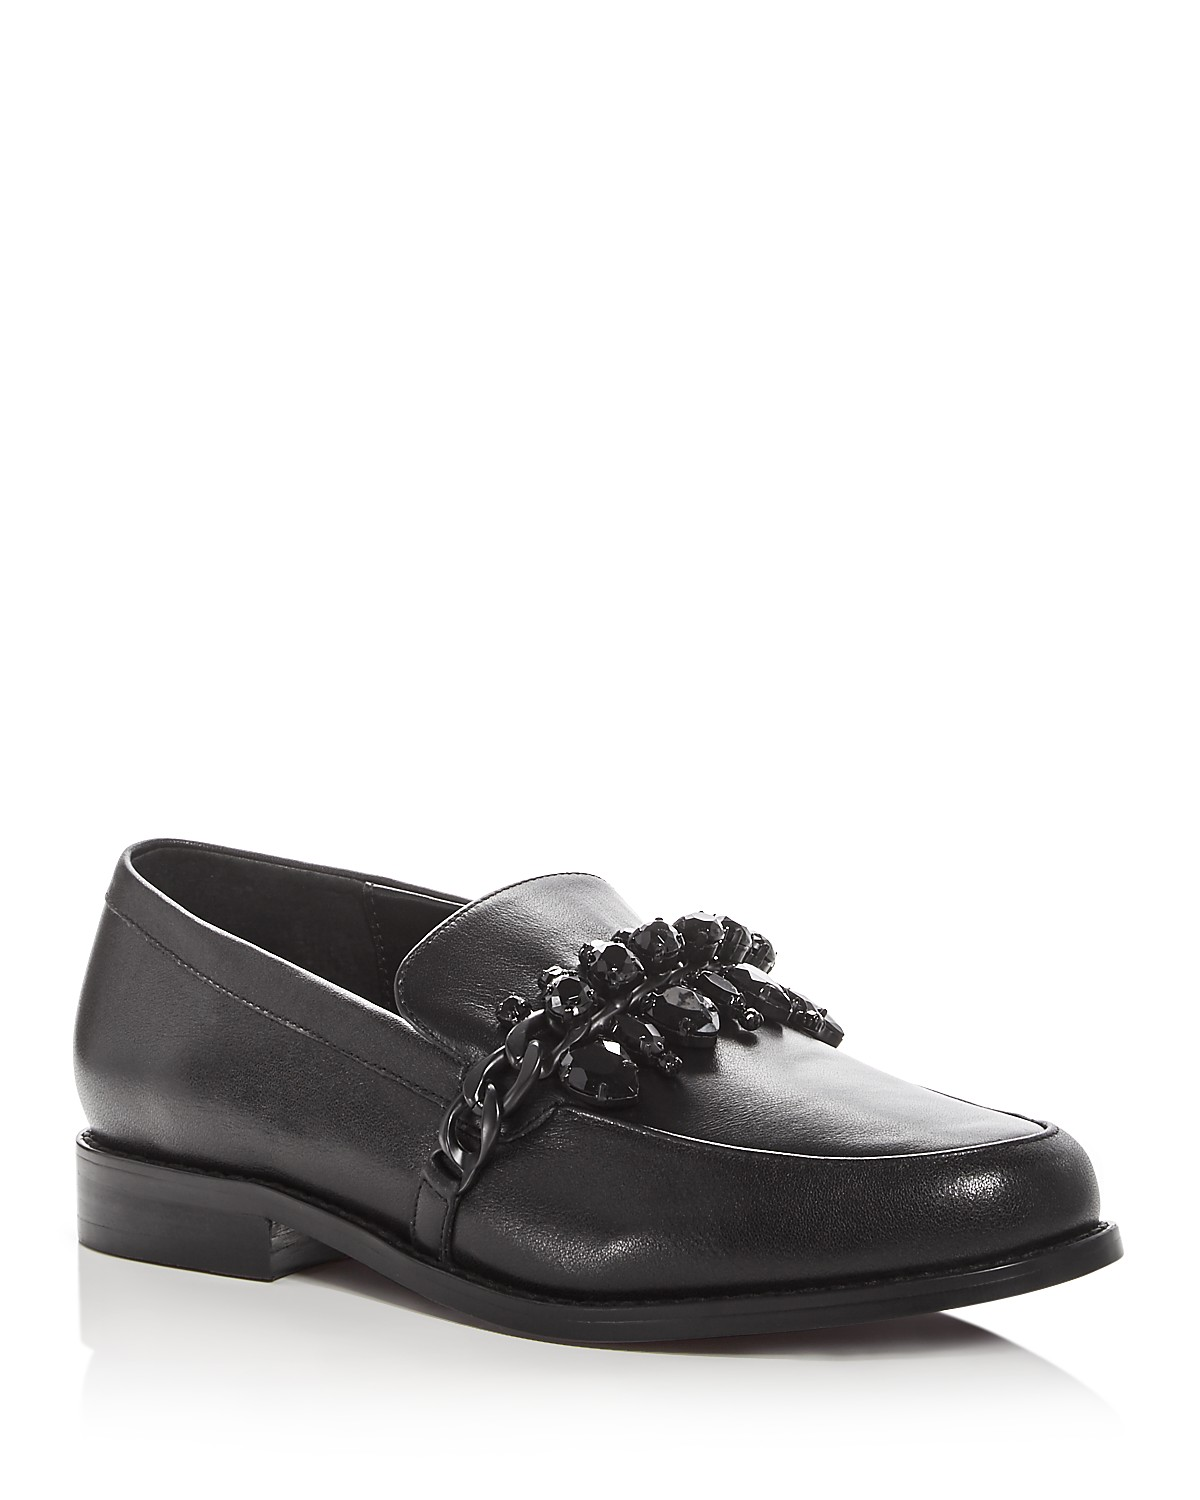 SENSO Women's Corby Ii Leather Embellished Loafers qZ2CZ